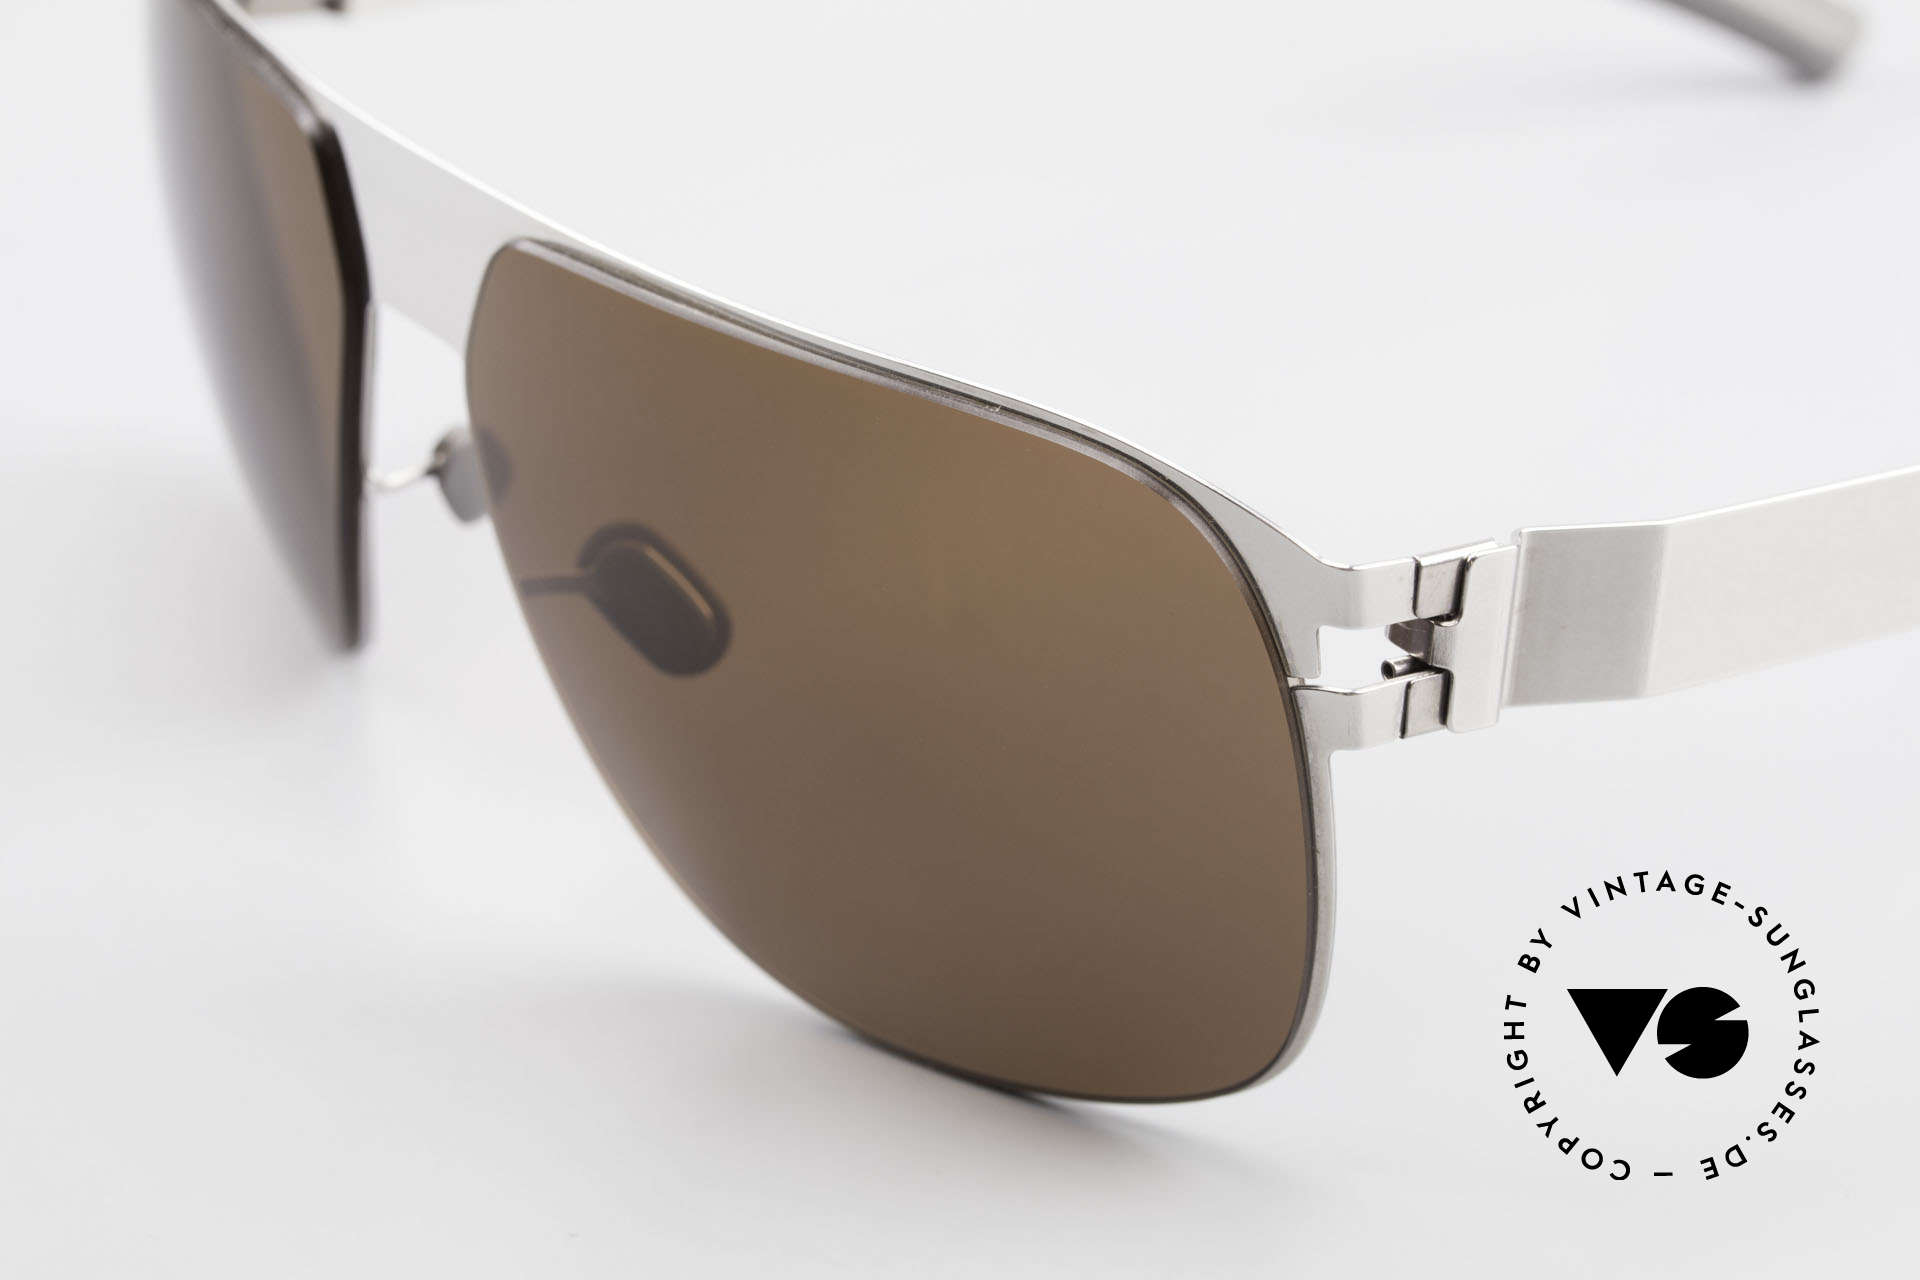 Mykita Tim Vintage Designer Shades 2011's, innovative and flexible metal frame = One size fits all!, Made for Men